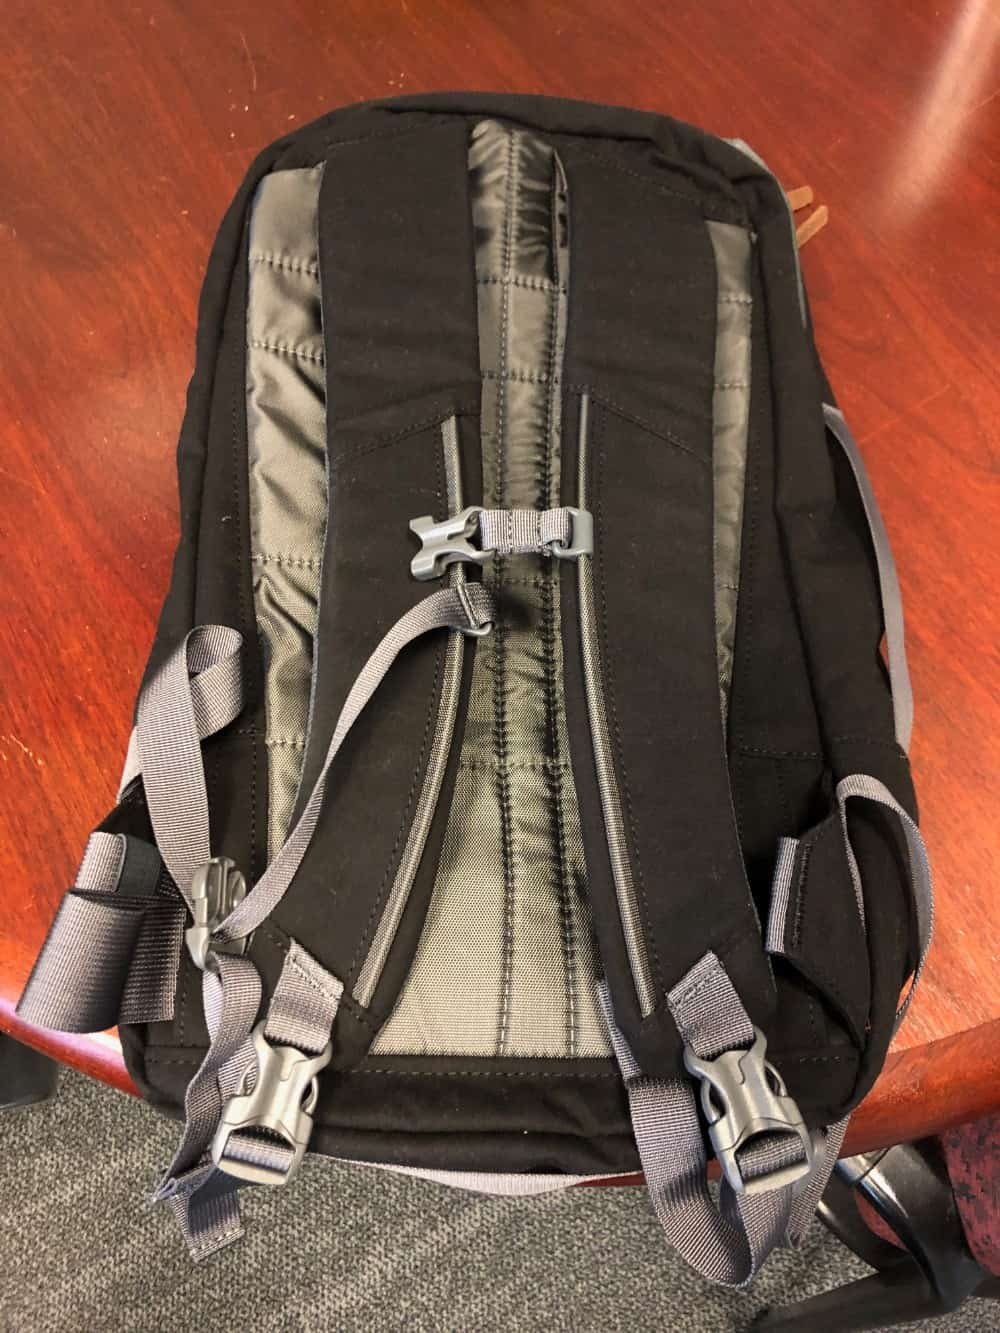 Close up photo of the shoulder straps for the Cotopaxi Nazca travel pack